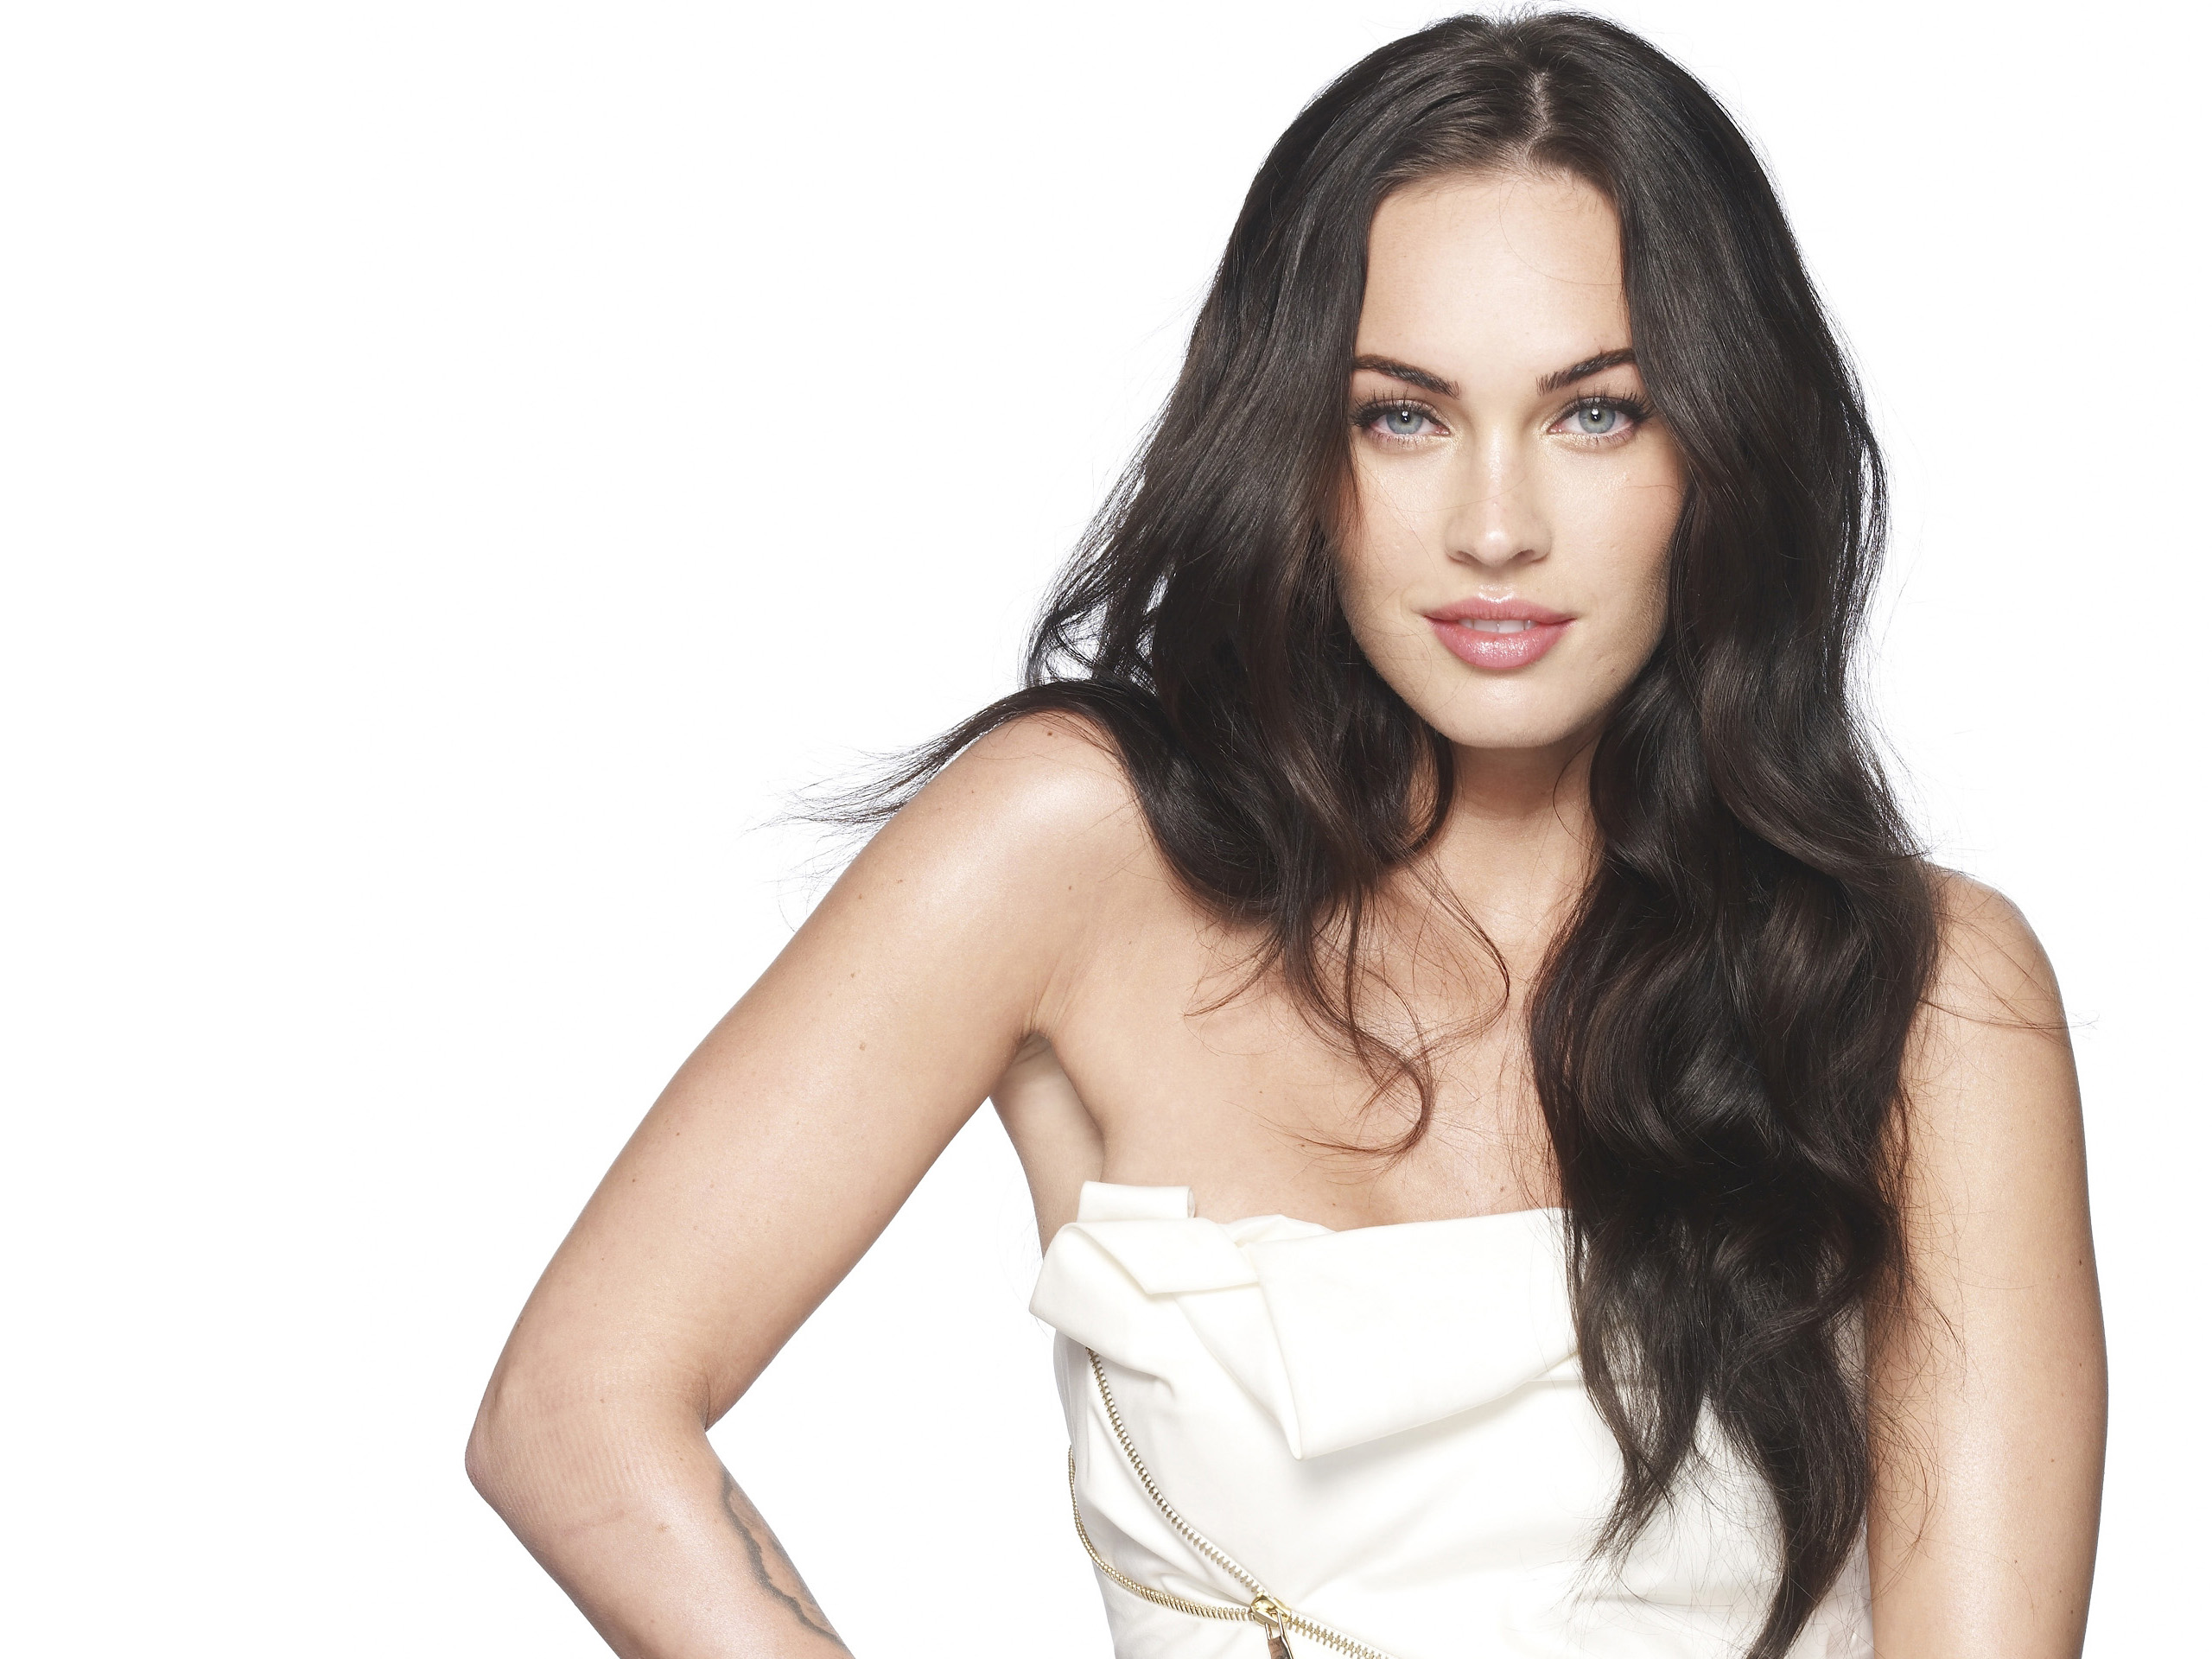 MEGAN FOX WALLPAPERS FREE Wallpapers Background images 2560x1920